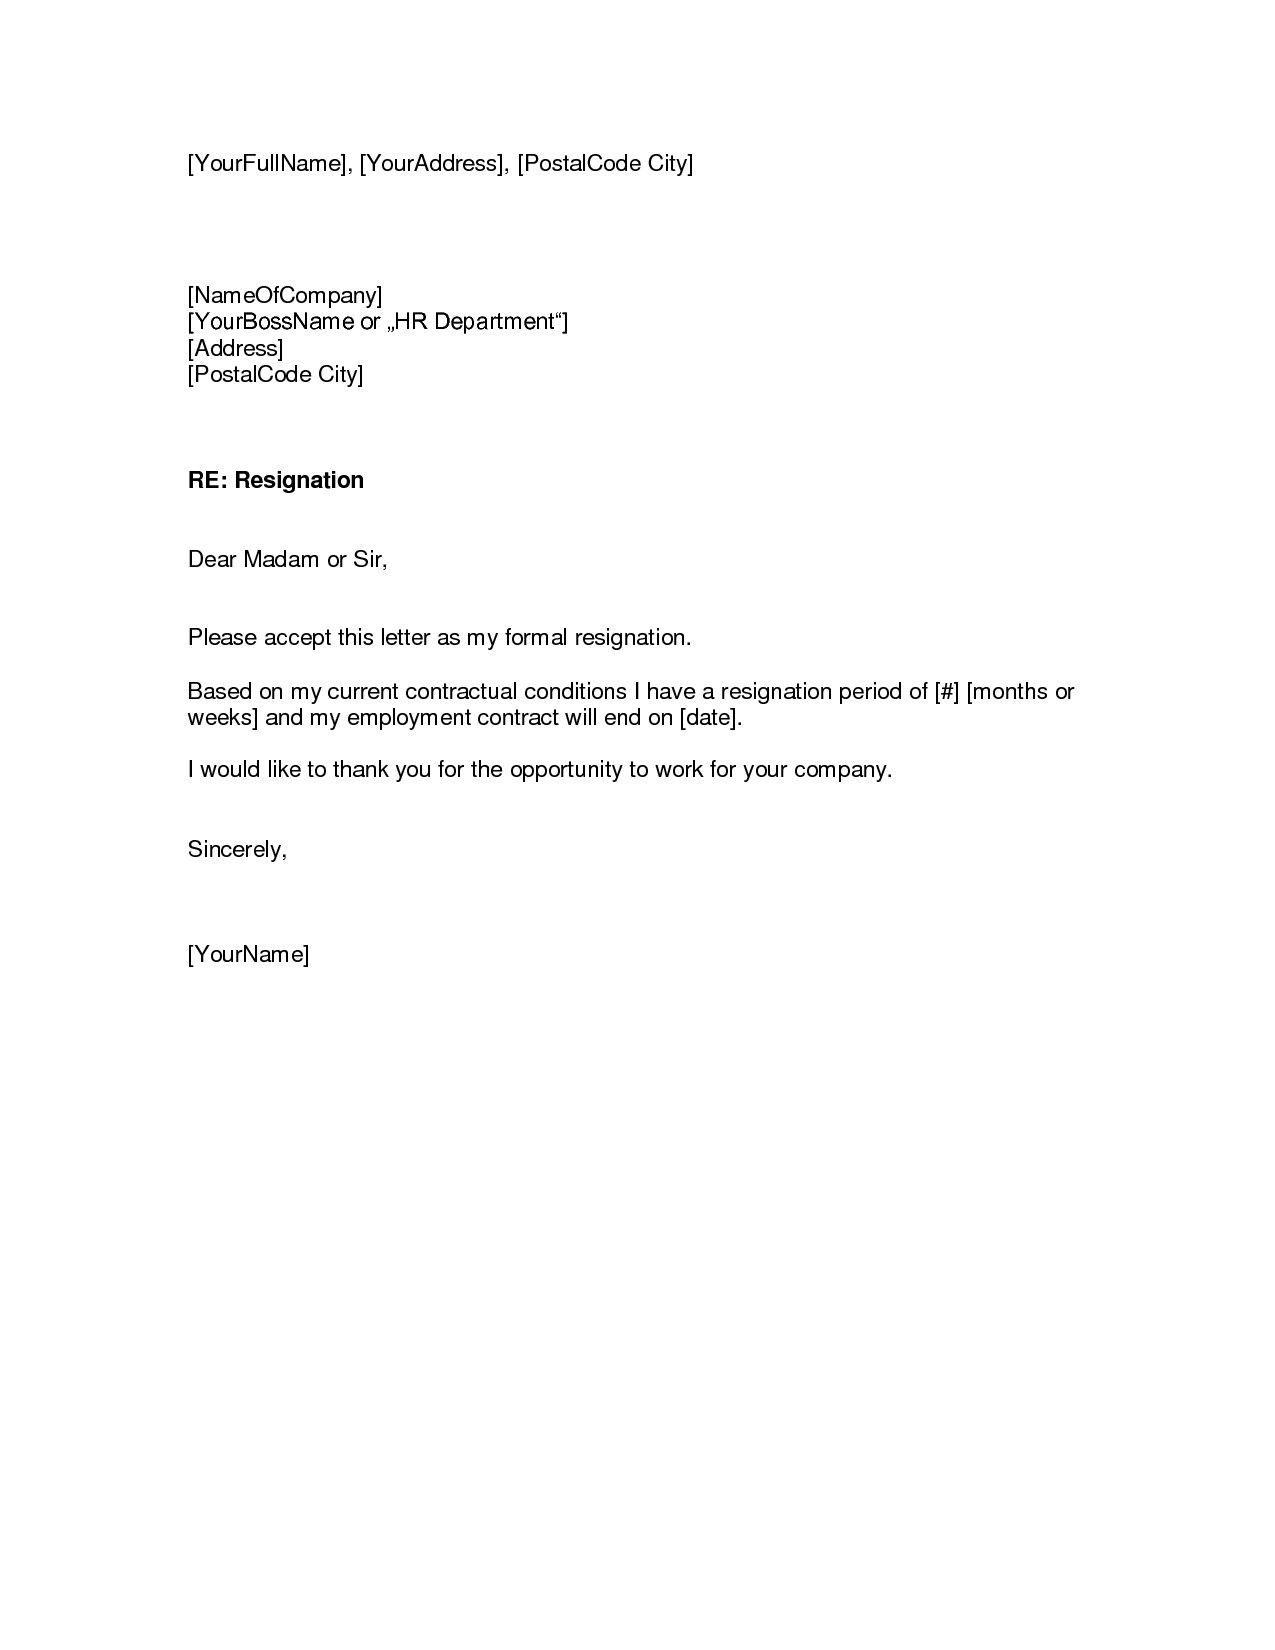 Resignation Letter Pdf Sample Pin By Jowelomirazol On Resignation Letter Resignation Sample